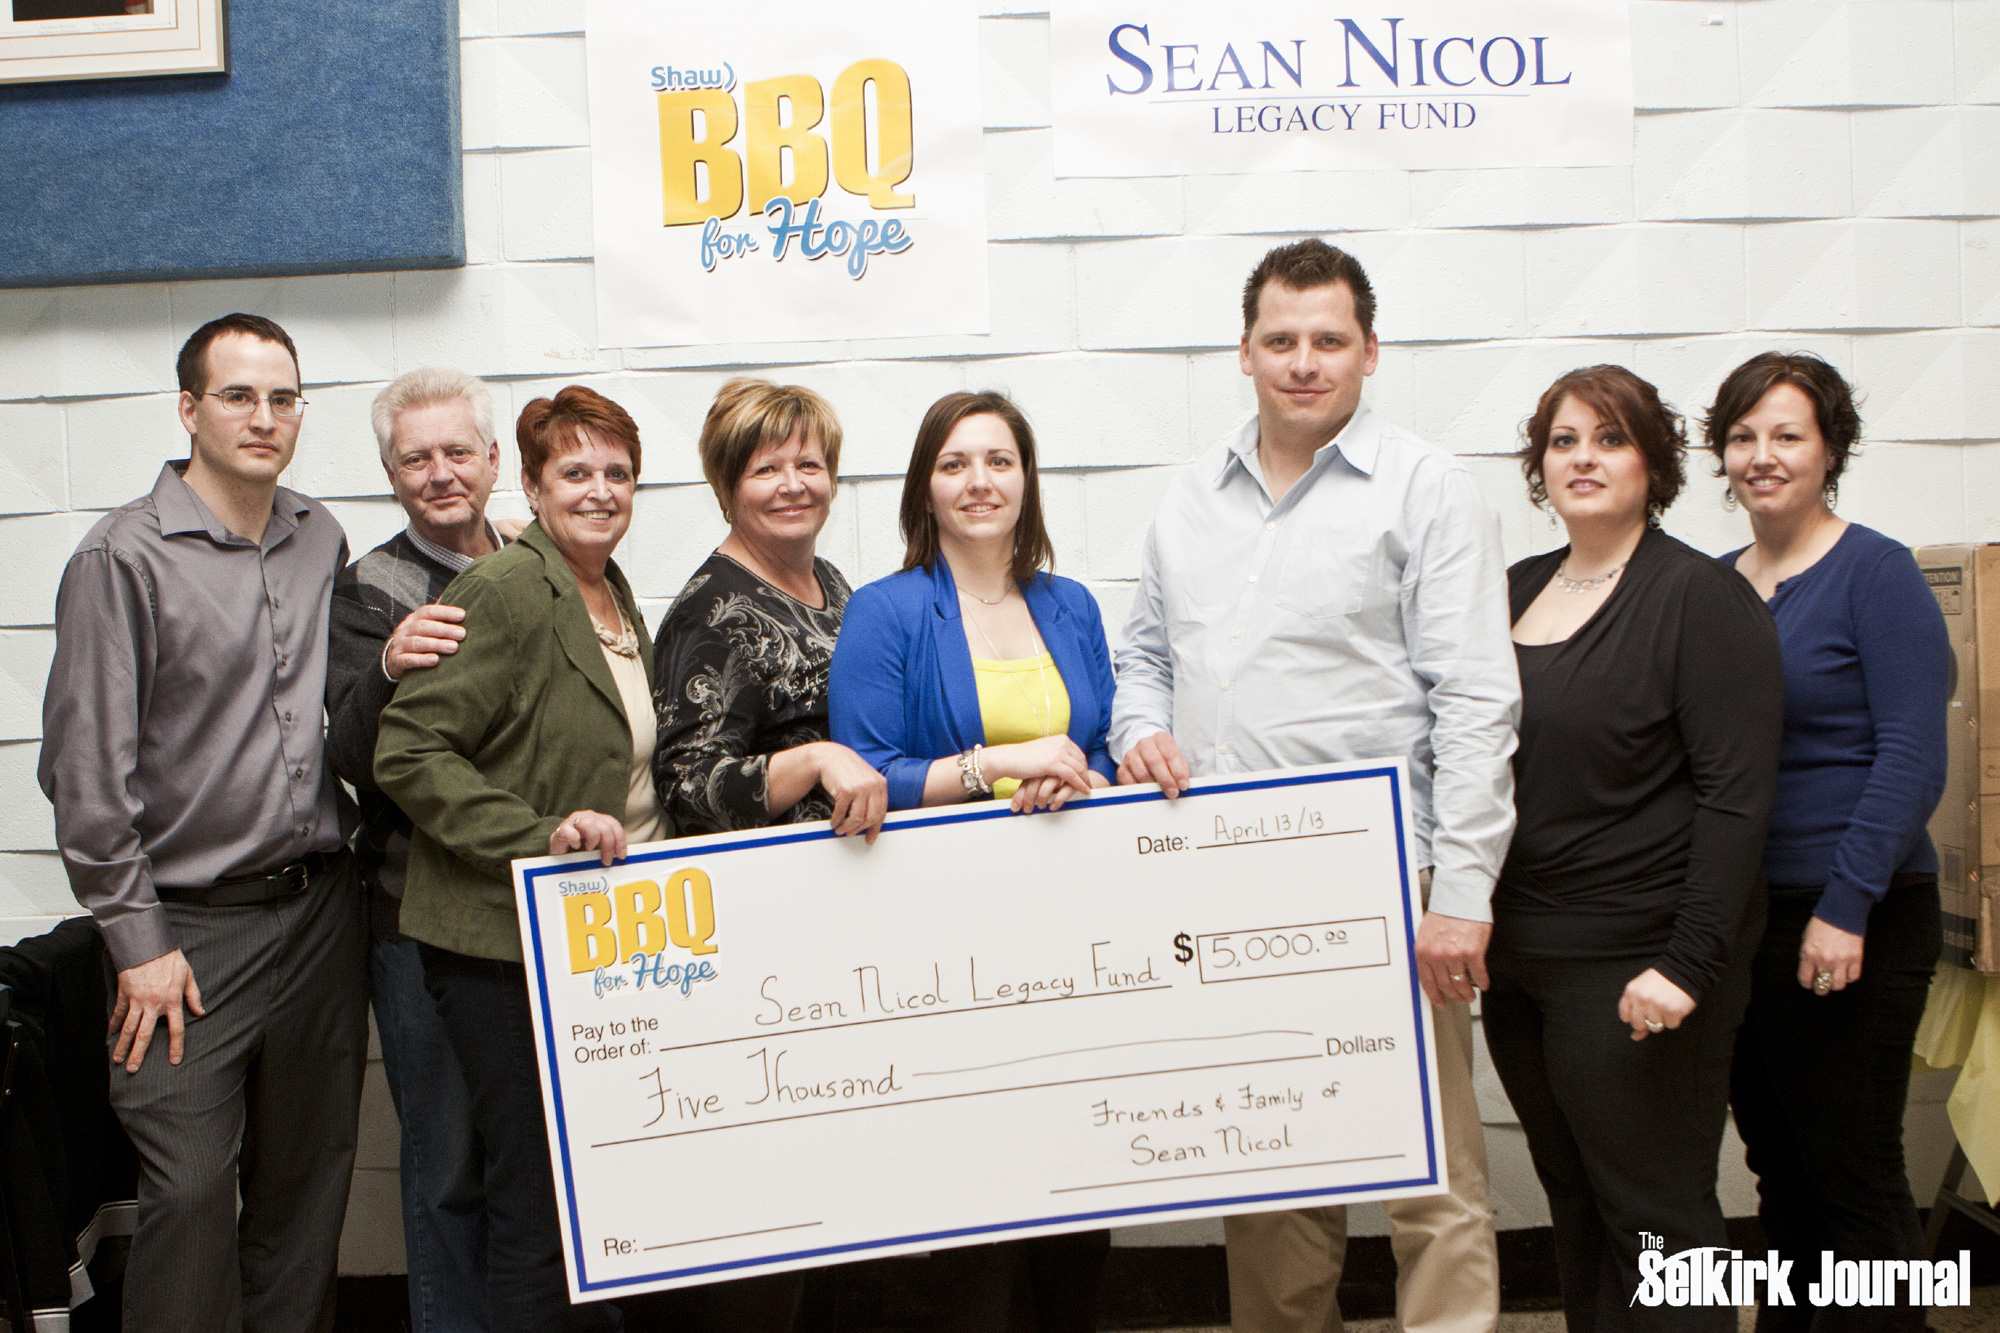 Chris Rey, representing our title sponsor Shaw, joins the SNLF committee to present Selkirk and District Community Foundation representative Lesli Malegus with the BIG cheque. After a final count, over $9,000 was invested into the Sean Nicol Legacy Fund held by the foundation.